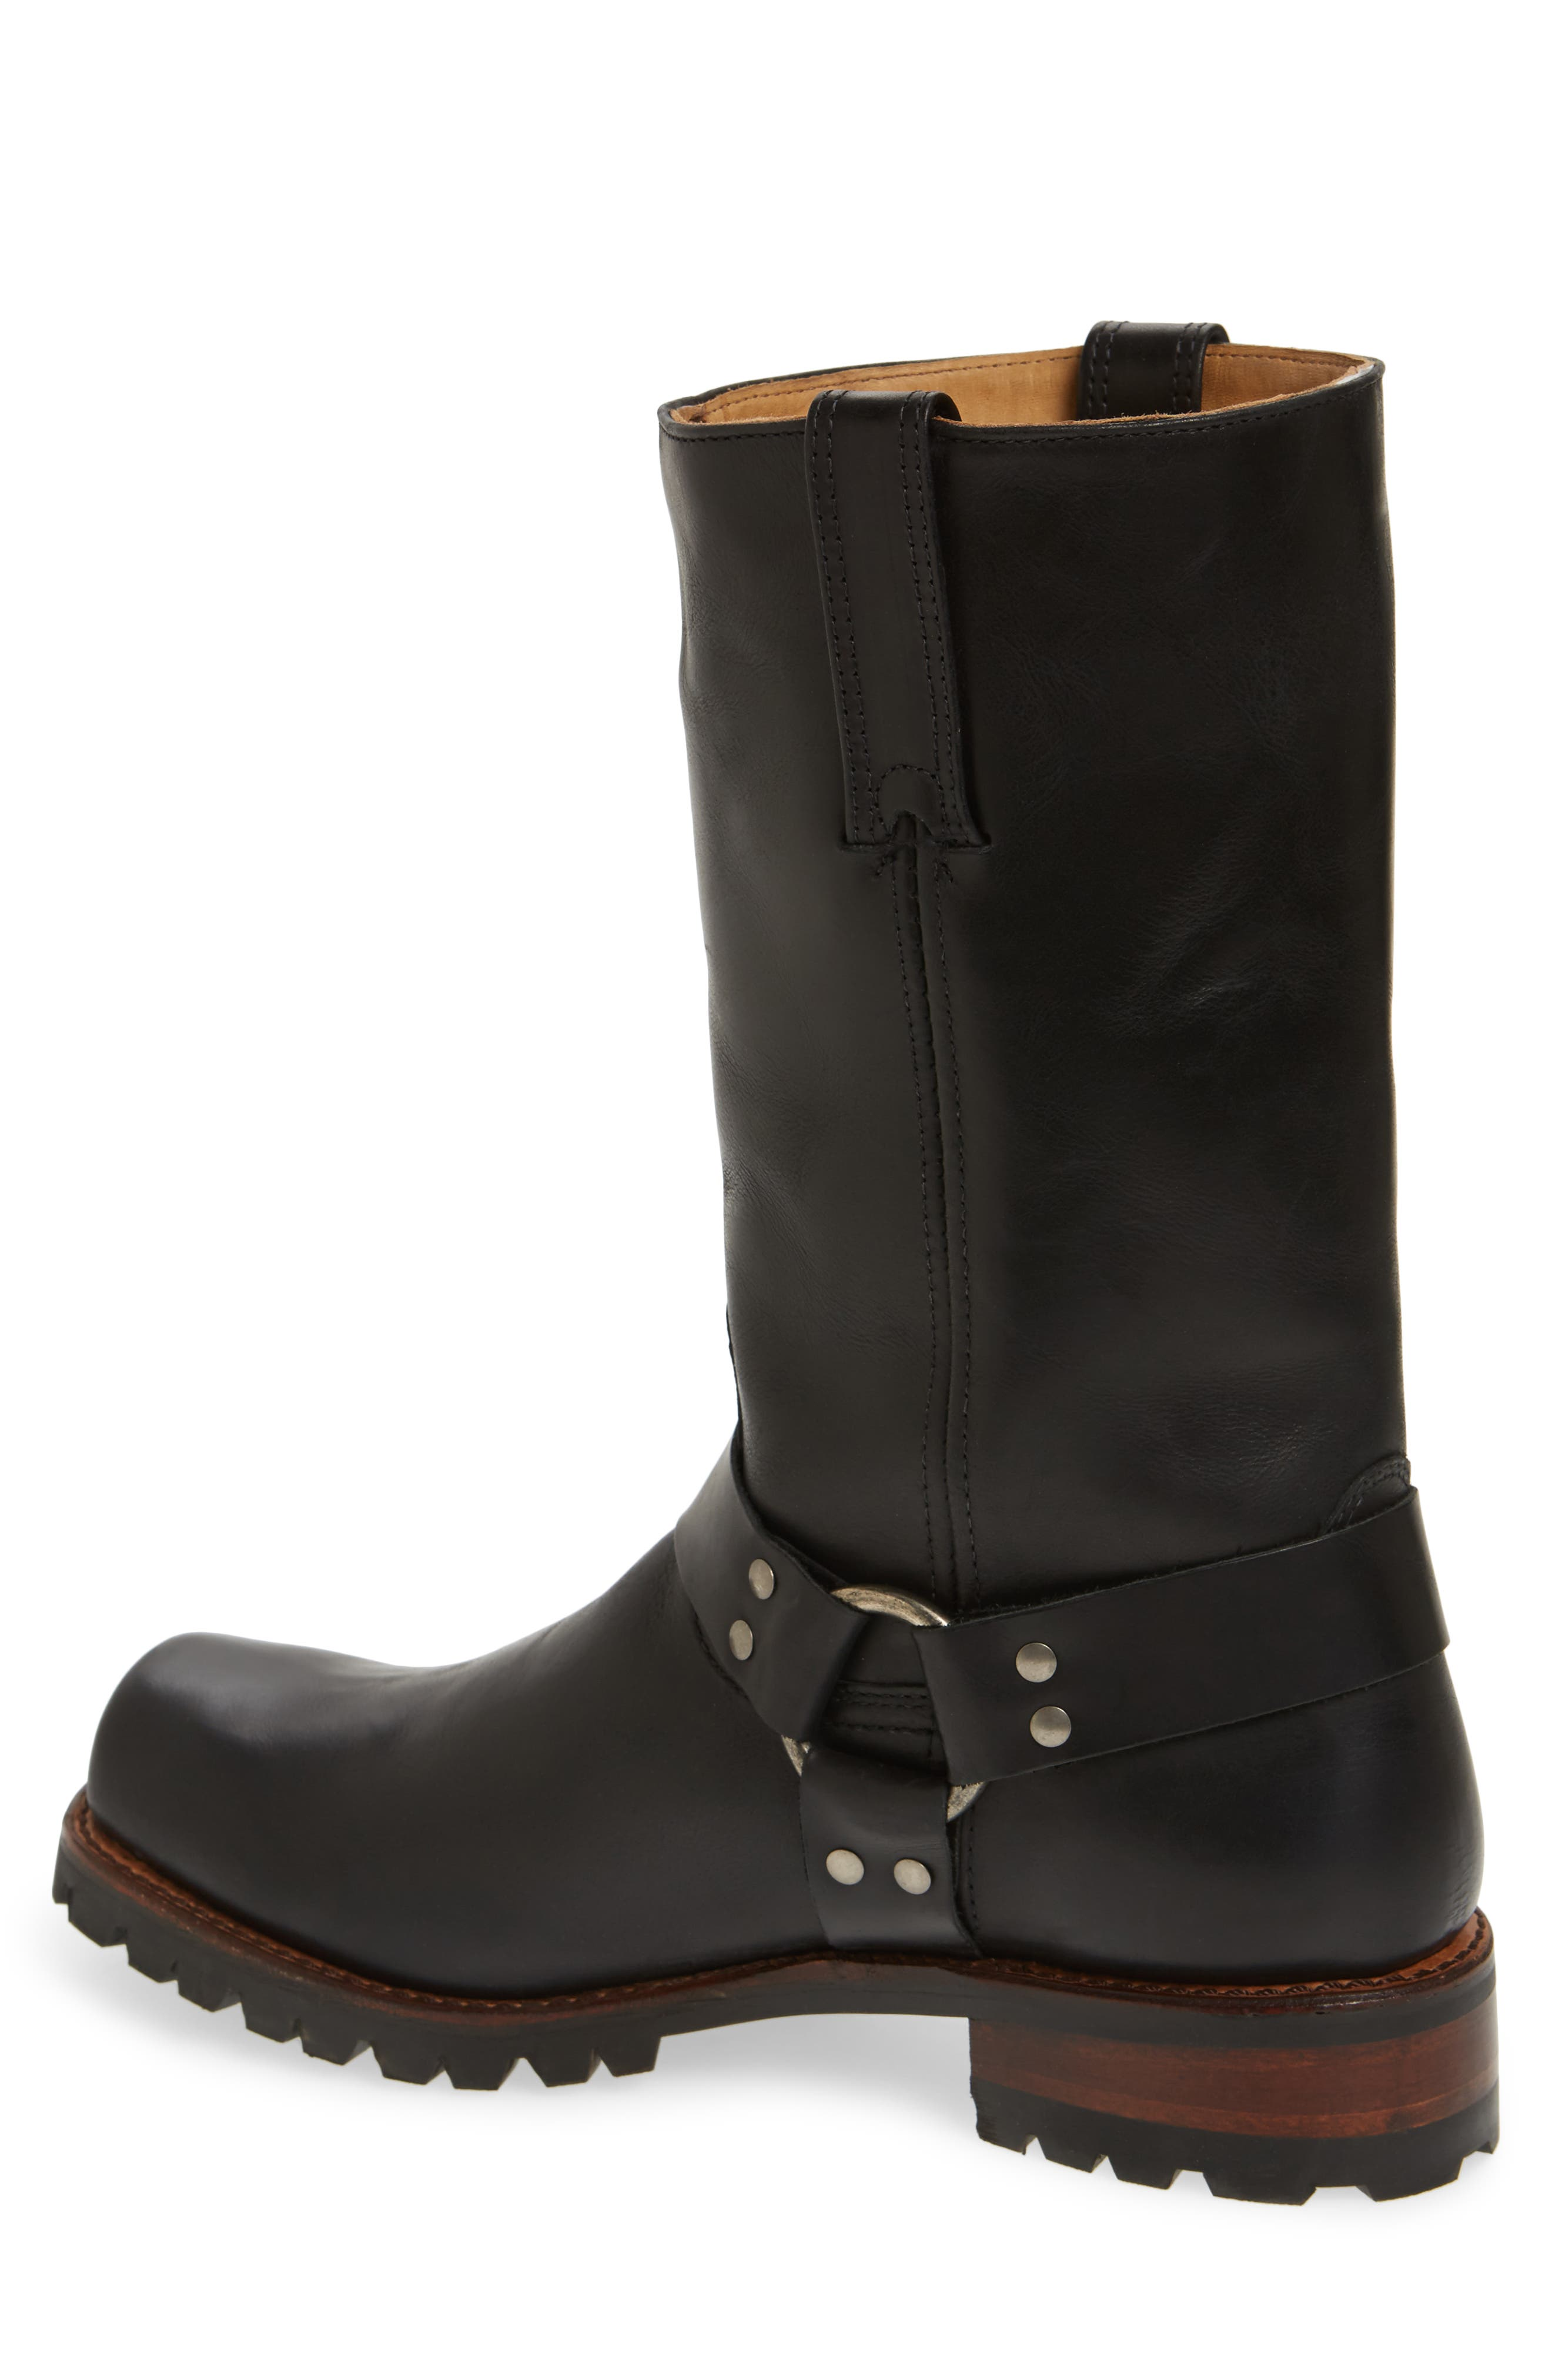 Addison Waterproof Harness Boot,                             Alternate thumbnail 2, color,                             Black Leather